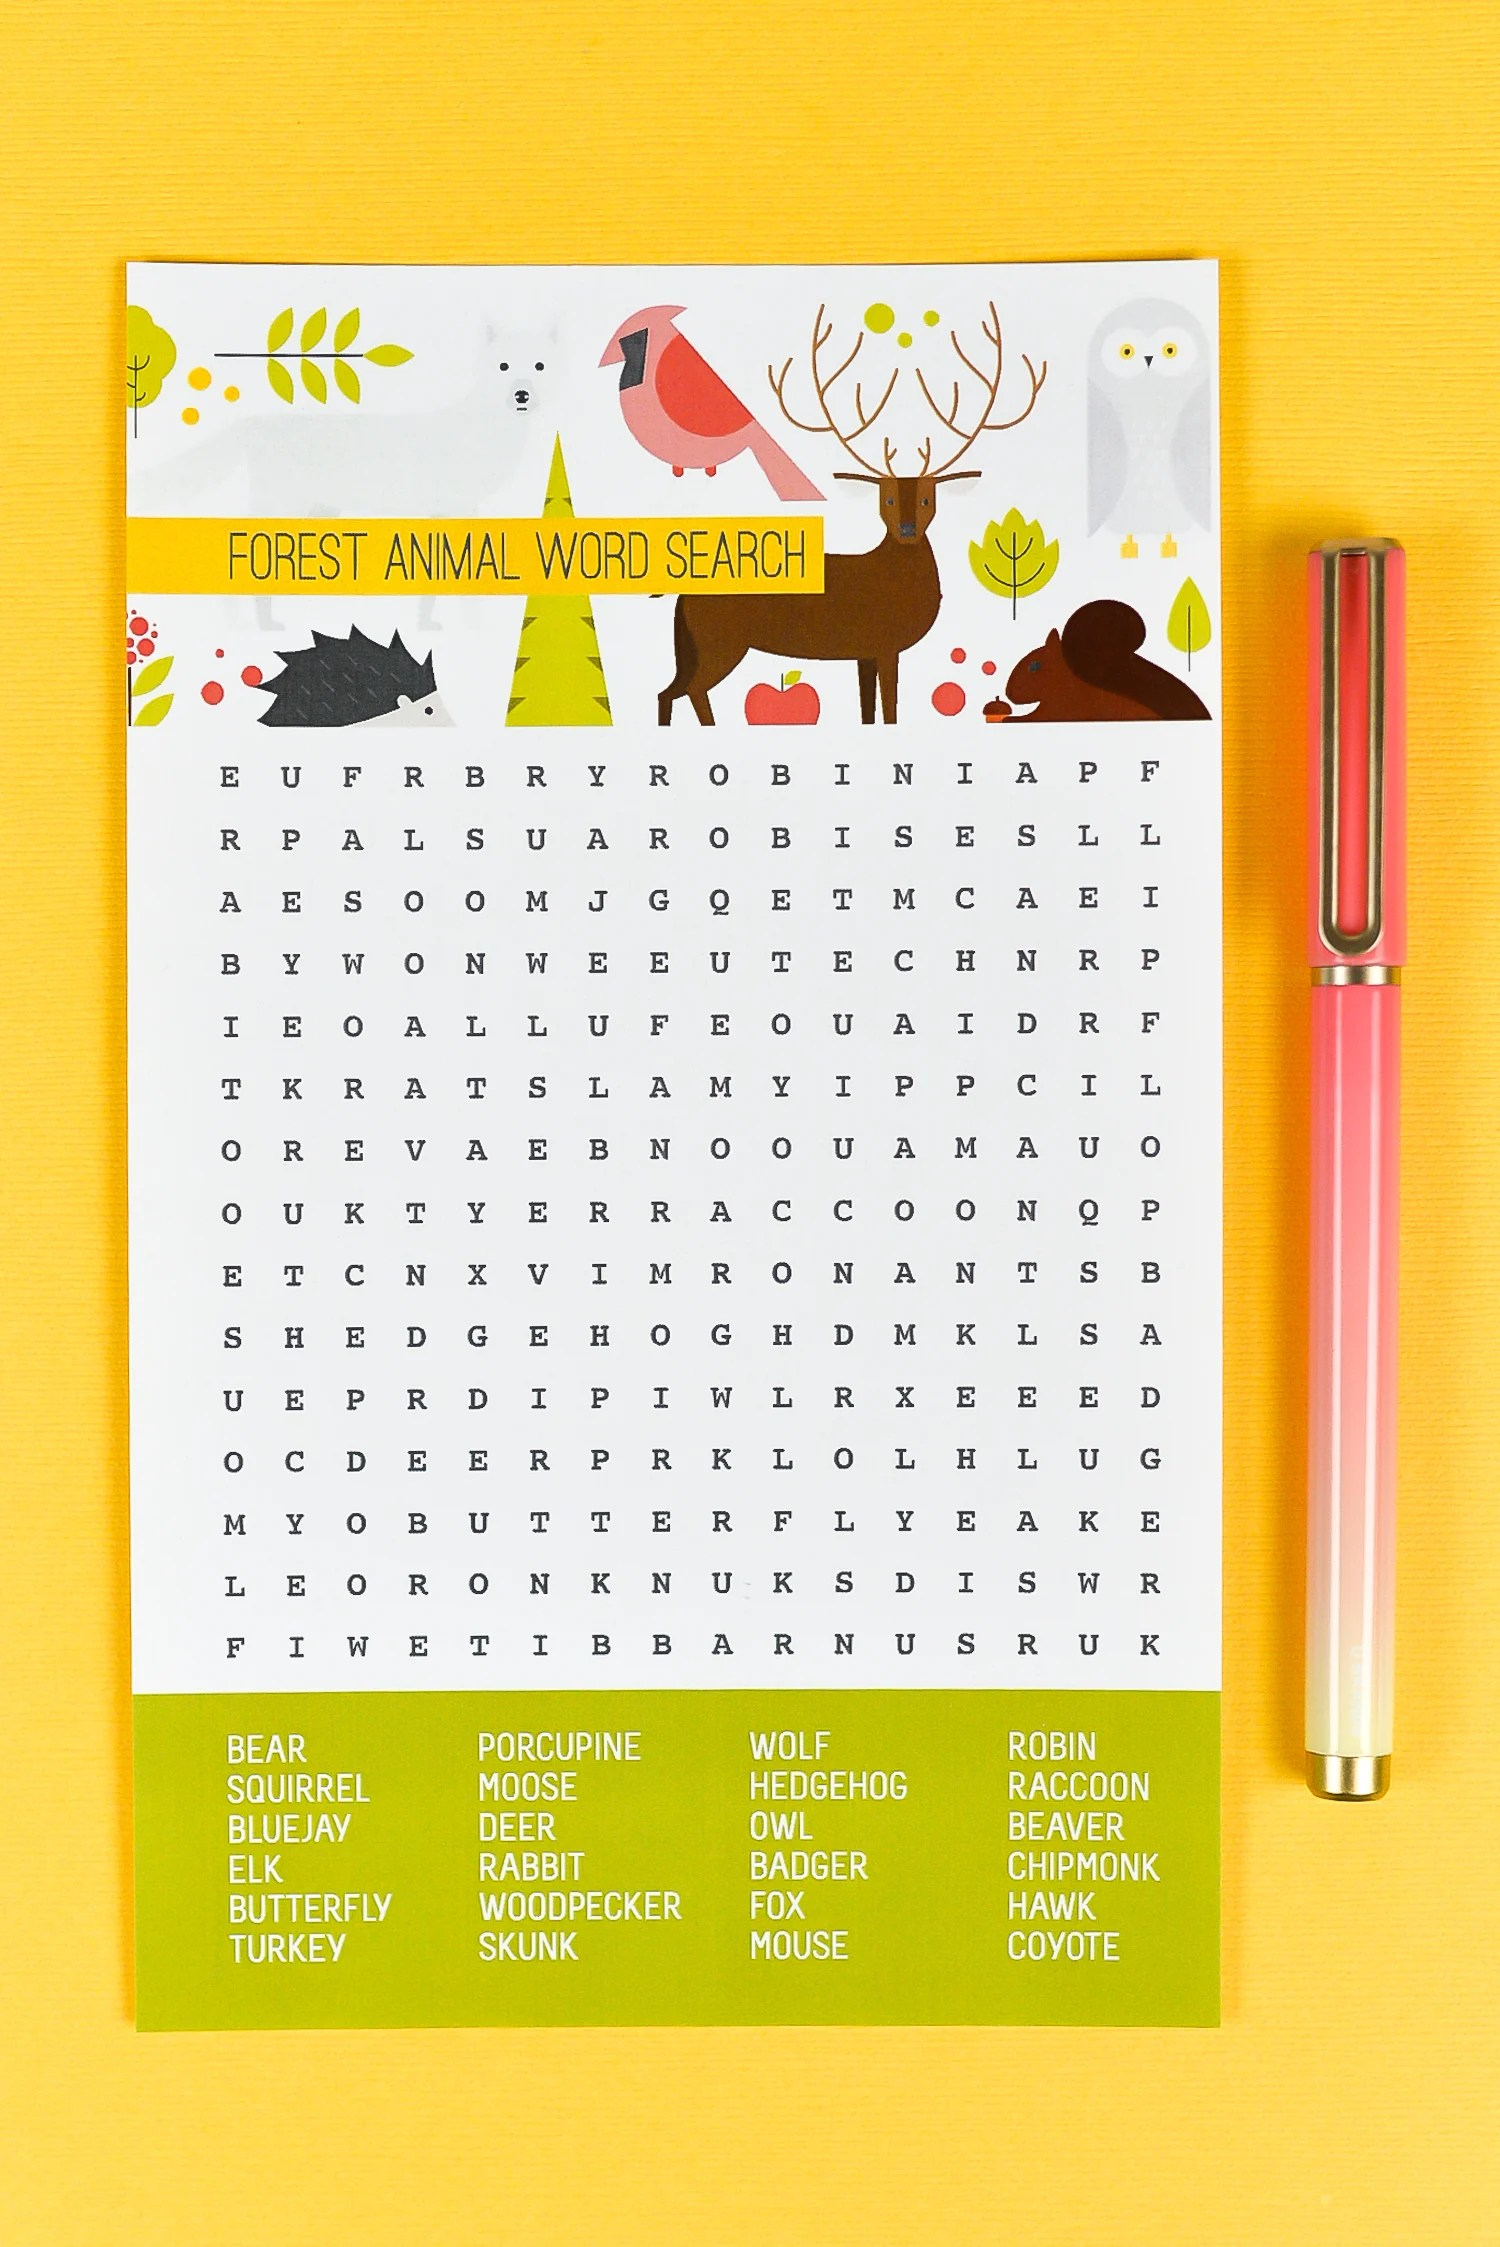 photograph relating to Free Printable Woodland Animal Templates referred to as No cost Printable Woodland Animal Phrase Glance - Hey, Allows Produce